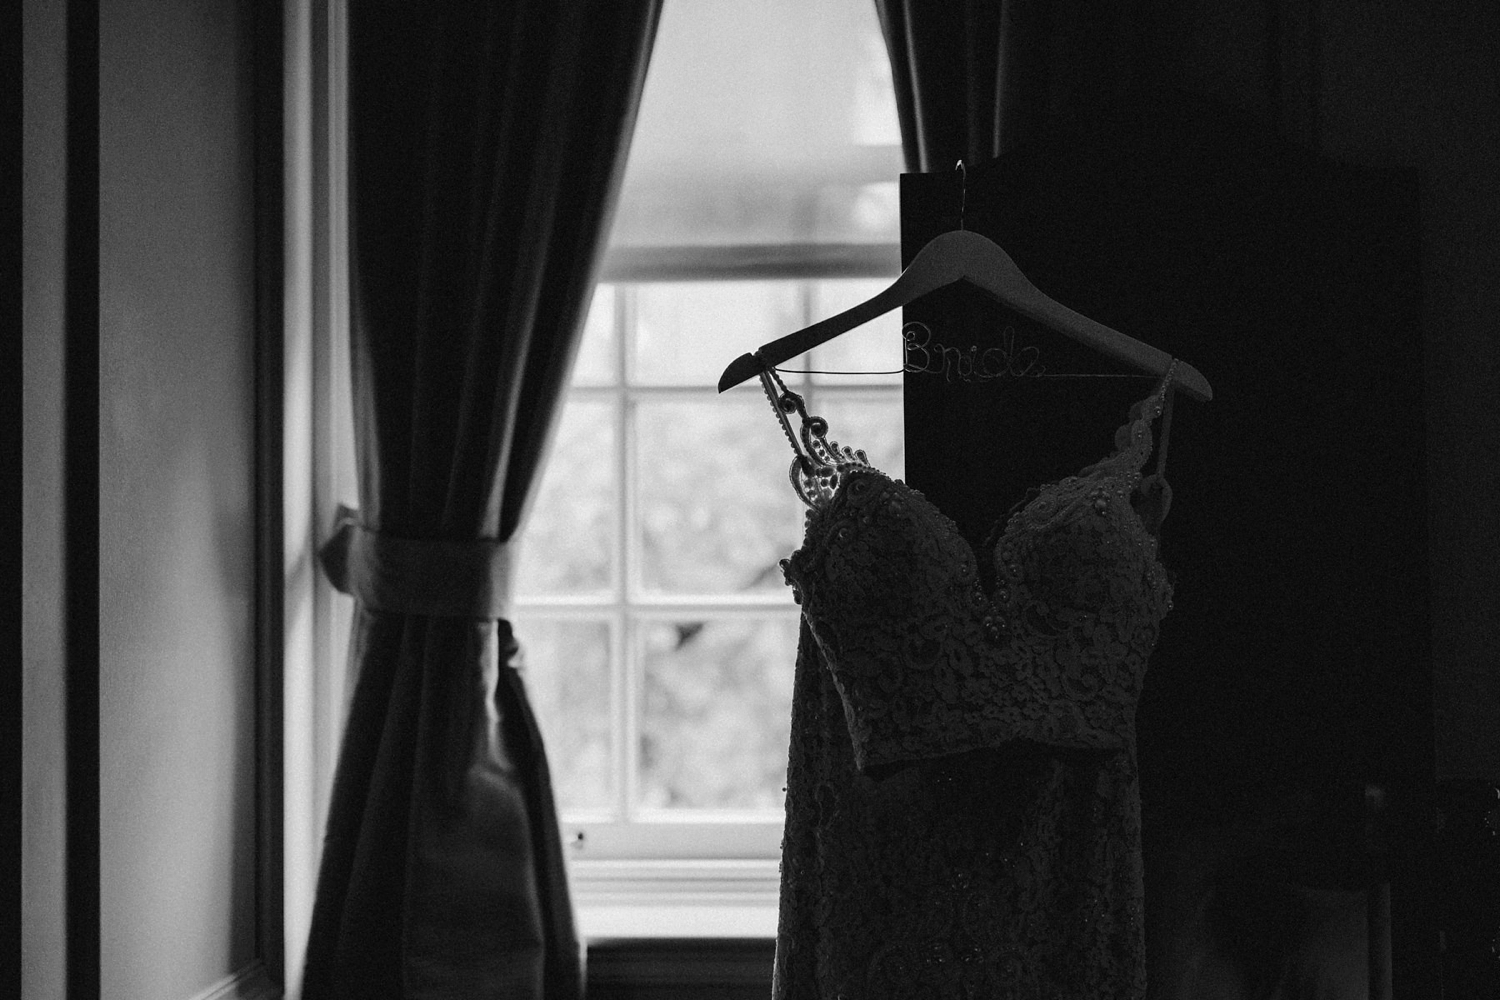 Berta wedding dress at Casa Loma wedding Toronto.